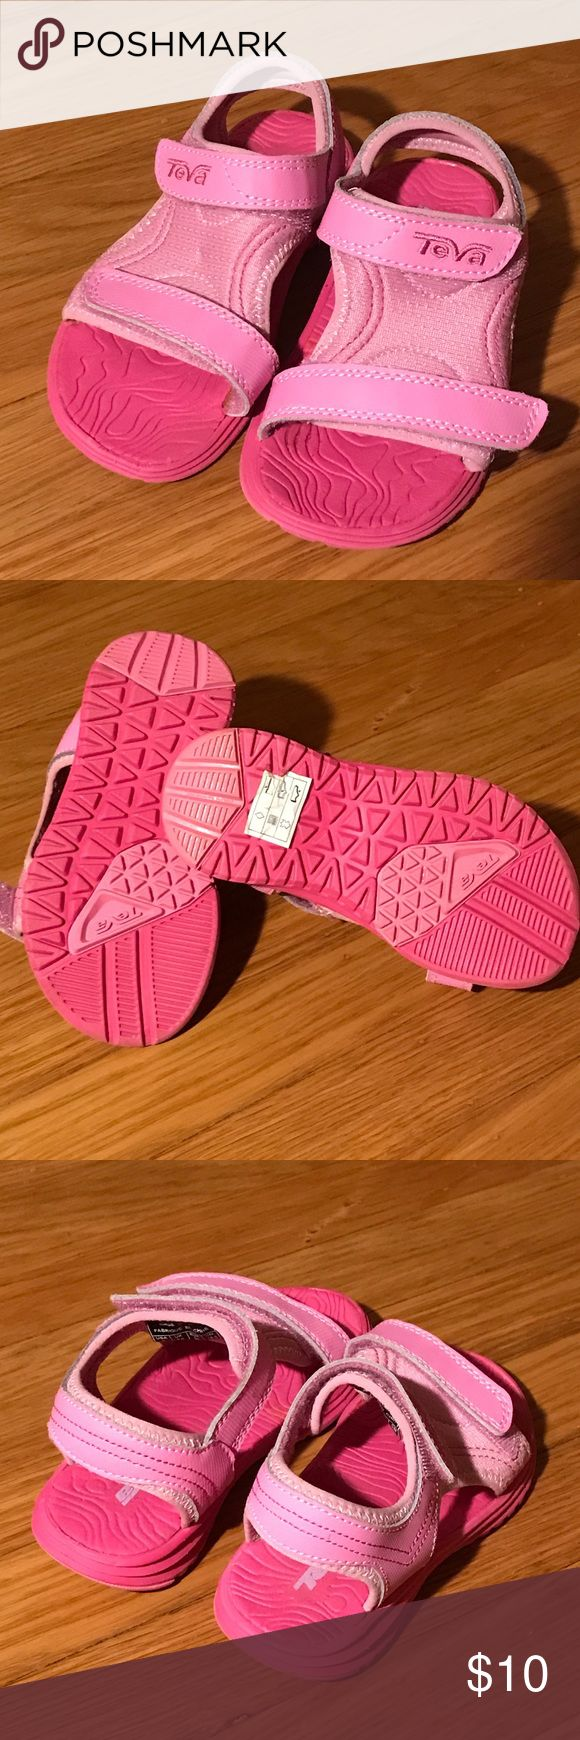 Girls Teva water shoes; Size 9 These are almost new Teva sandals, size 9.  My daughter wore them once in the yard.  They are in excellent condition. Teva Shoes Sandals & Flip Flops